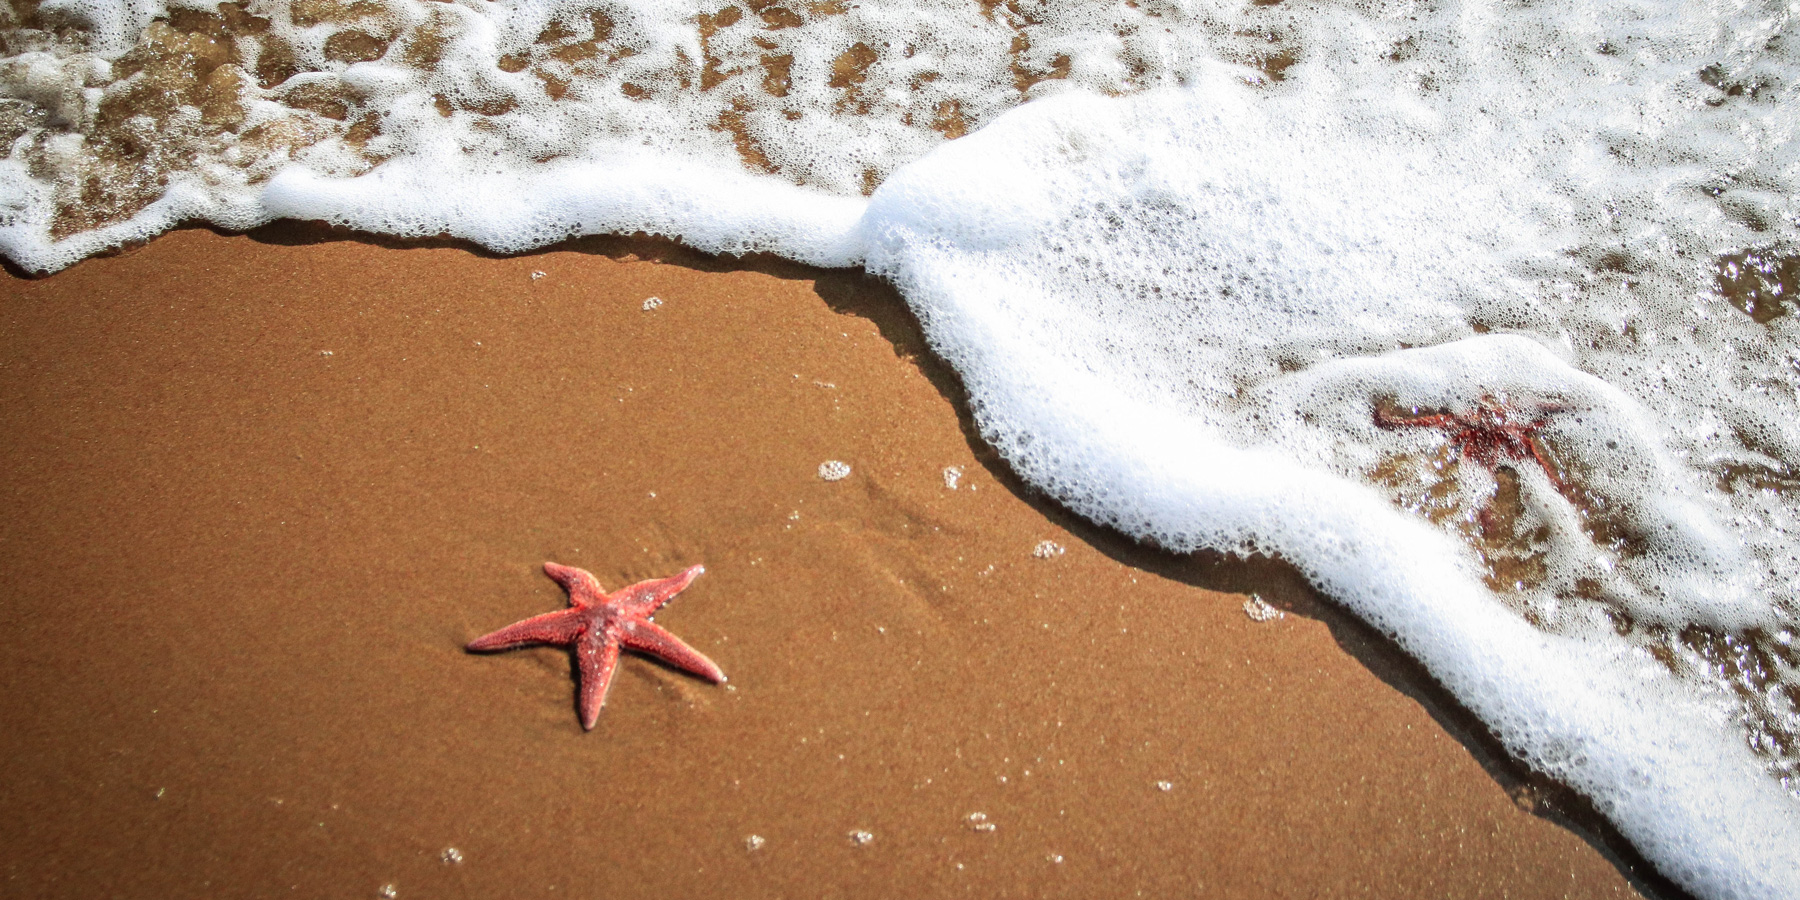 What's Your Starfish Story?